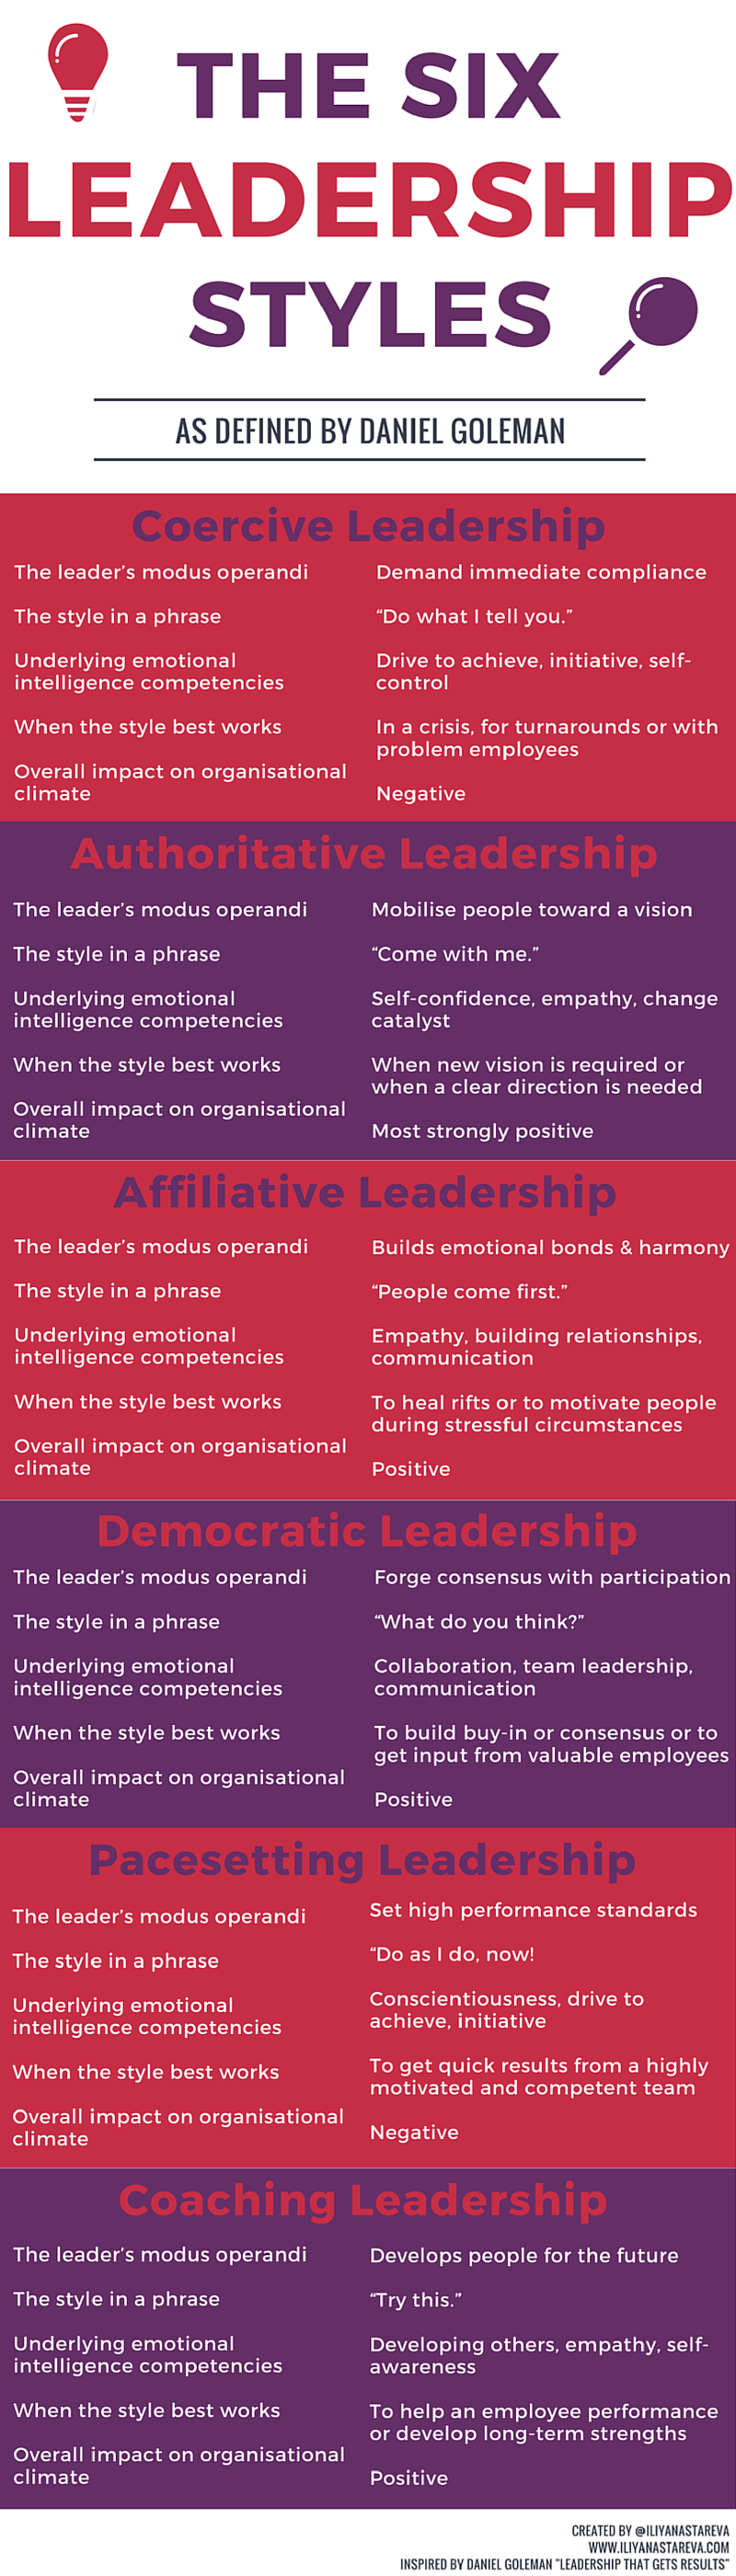 The_Six_Leadership_Styles_Infographic.png